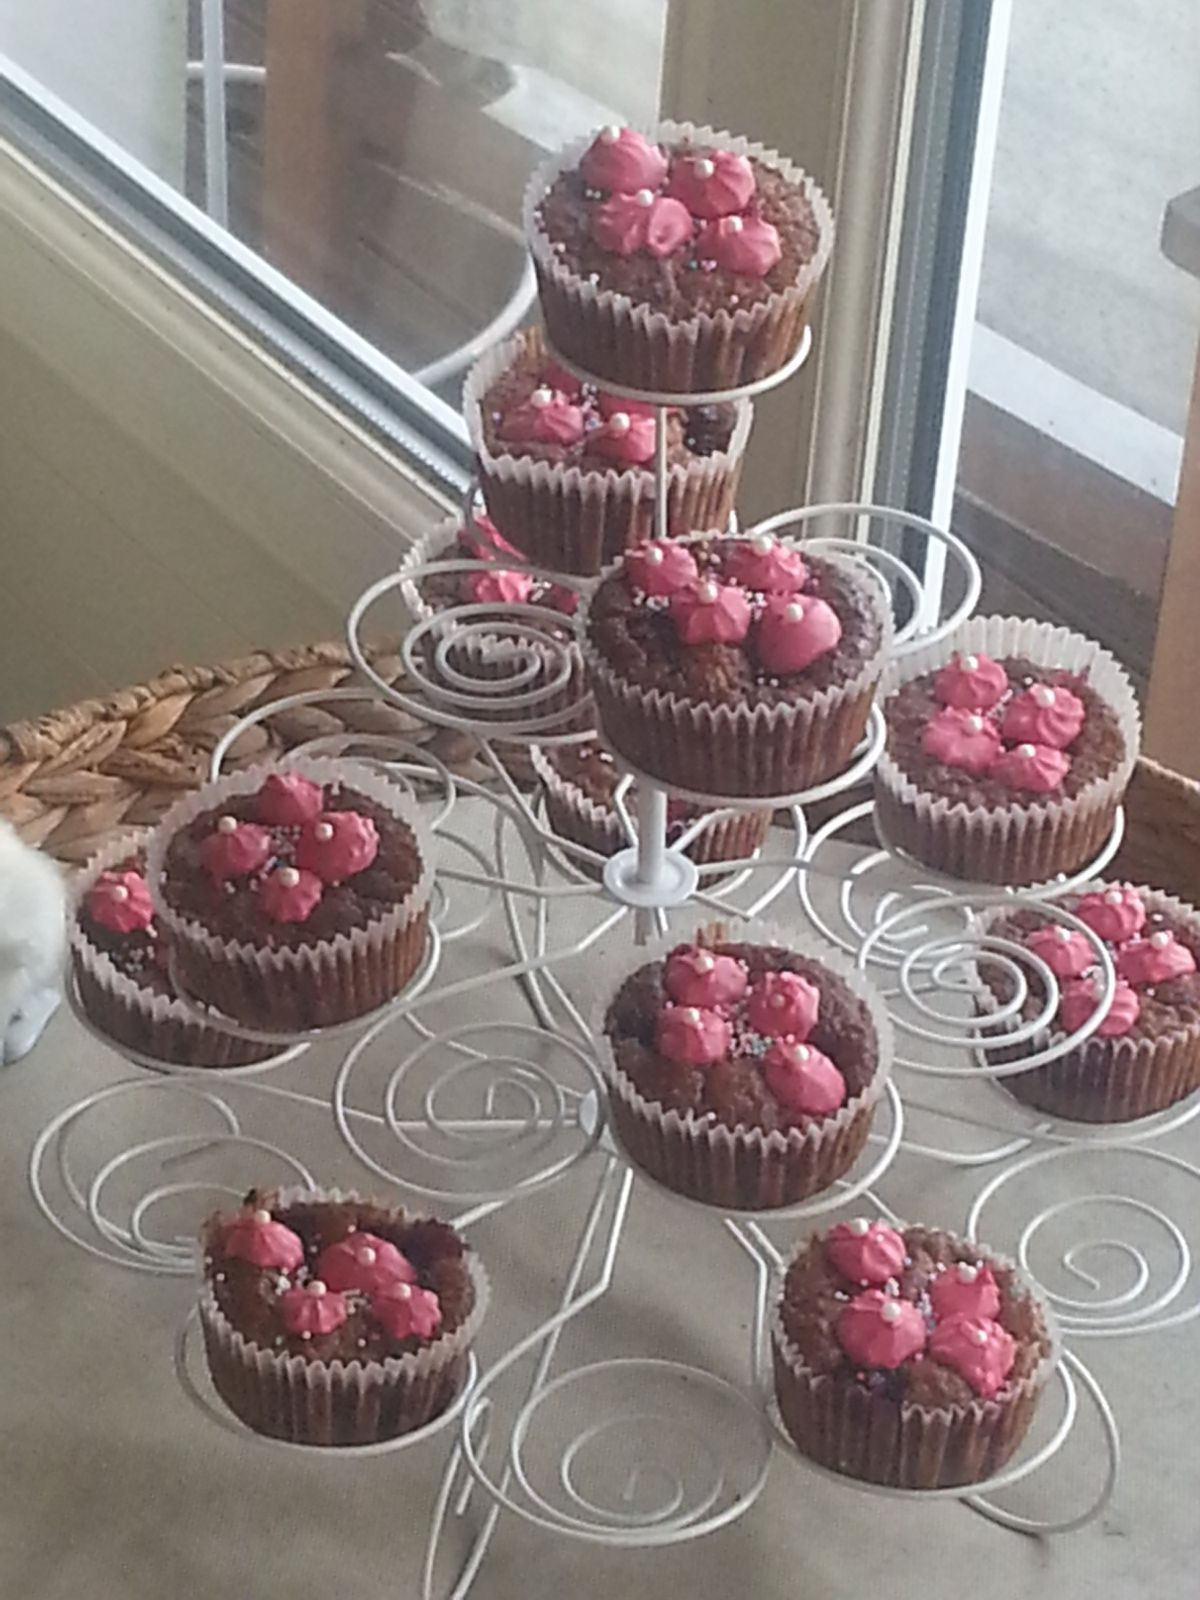 Cup cakes mûre